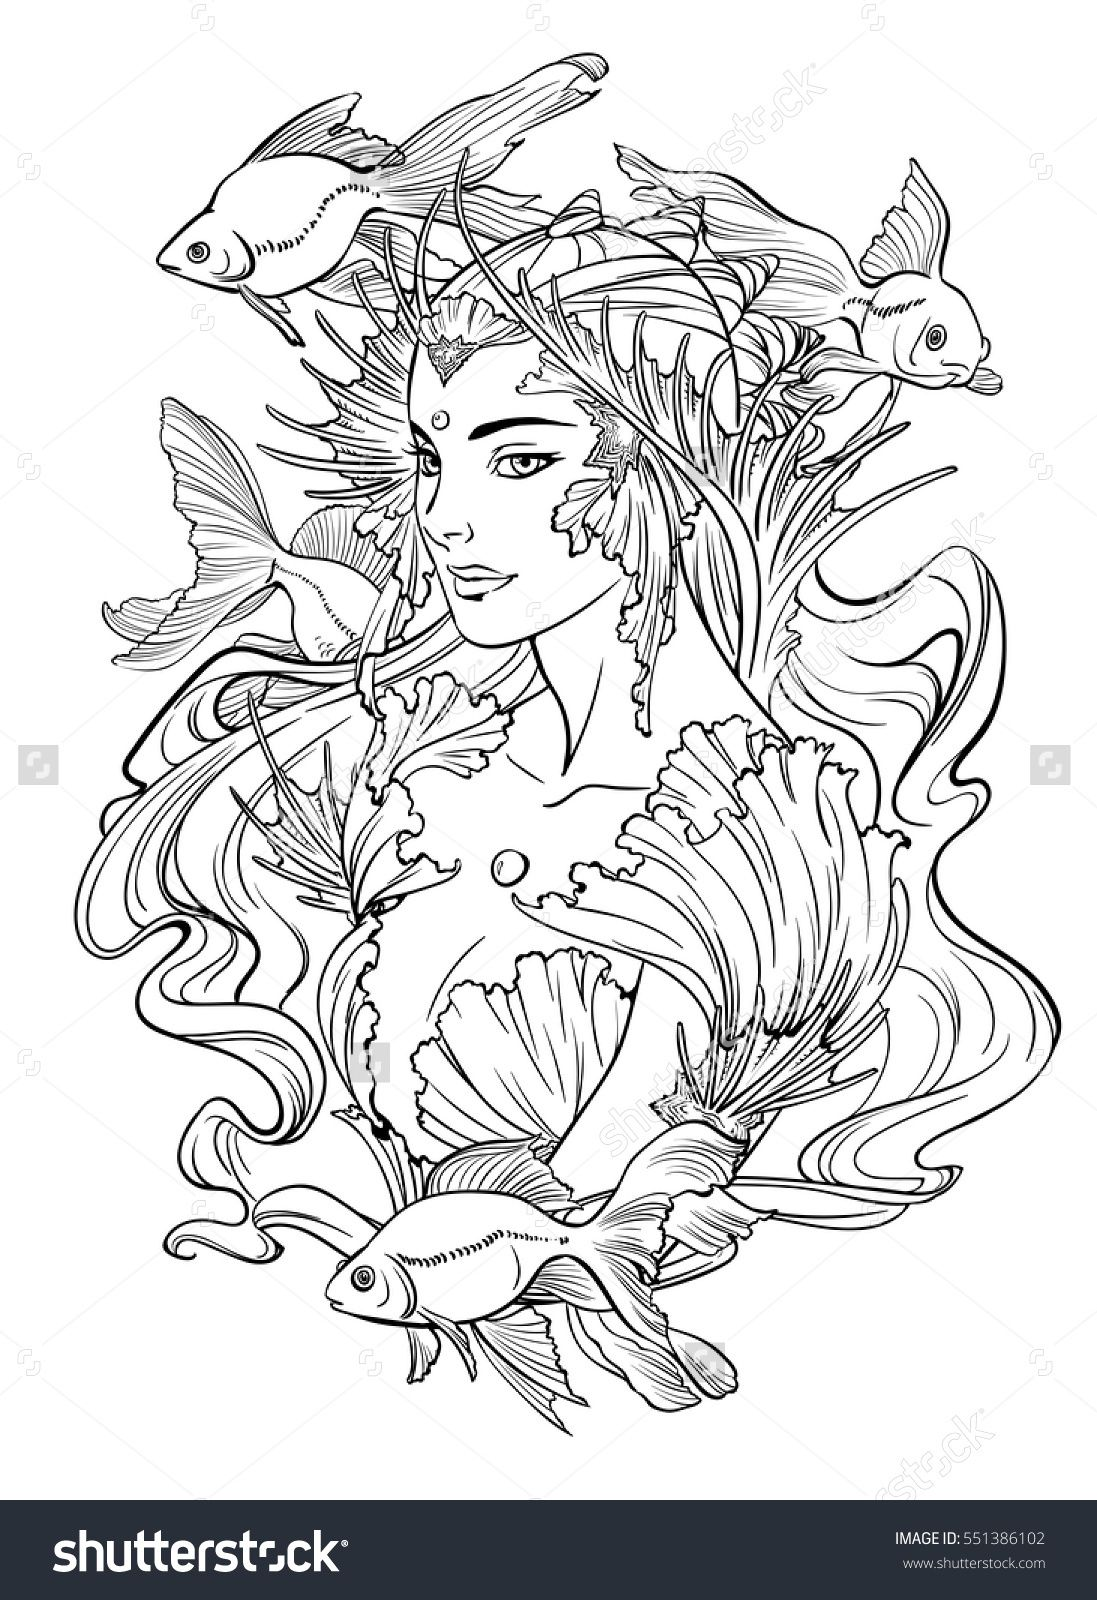 Illustration Of Mermaid Princess With Curled Hair Decorated With Seashell Elements And